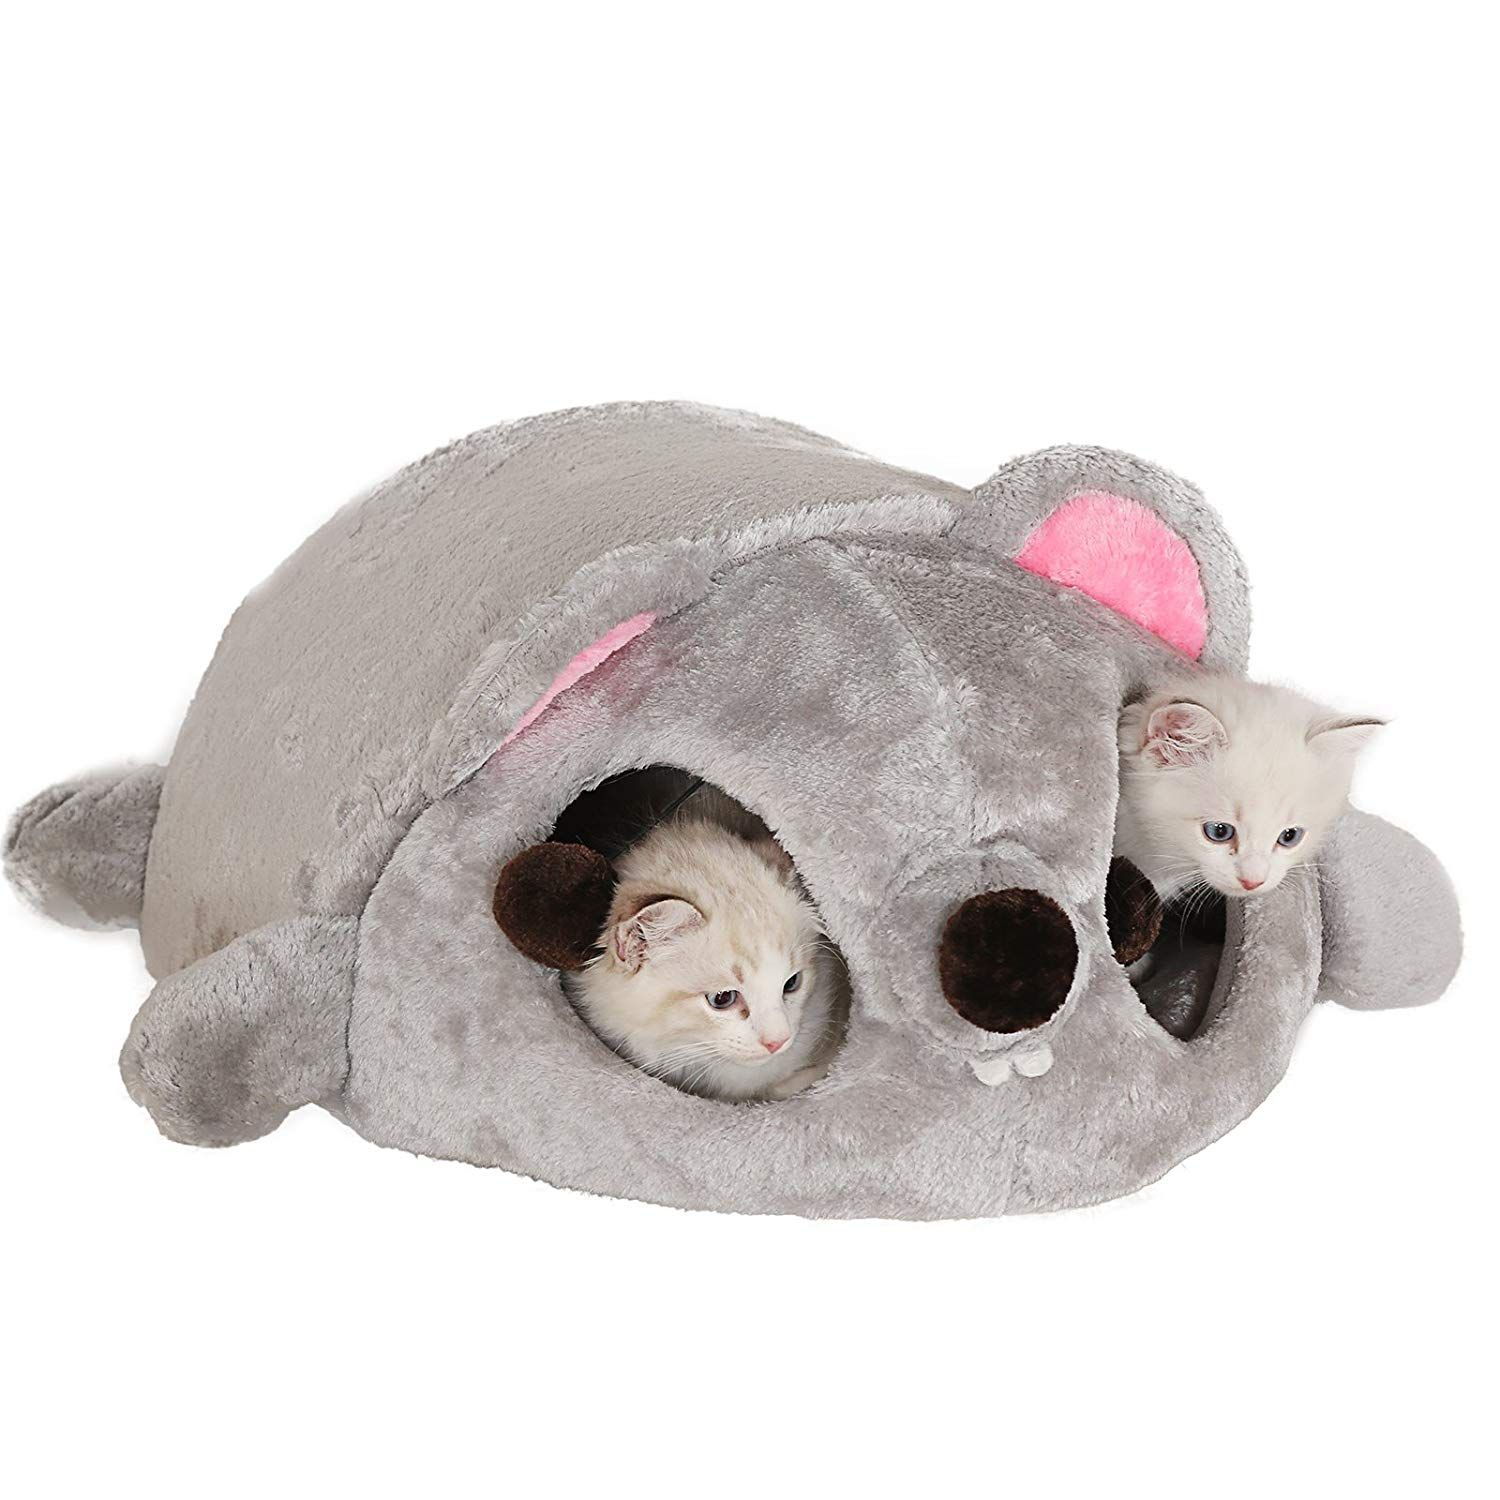 Xstiger Big Plush Cuddle Cave for Cats and Dogs Waterproof